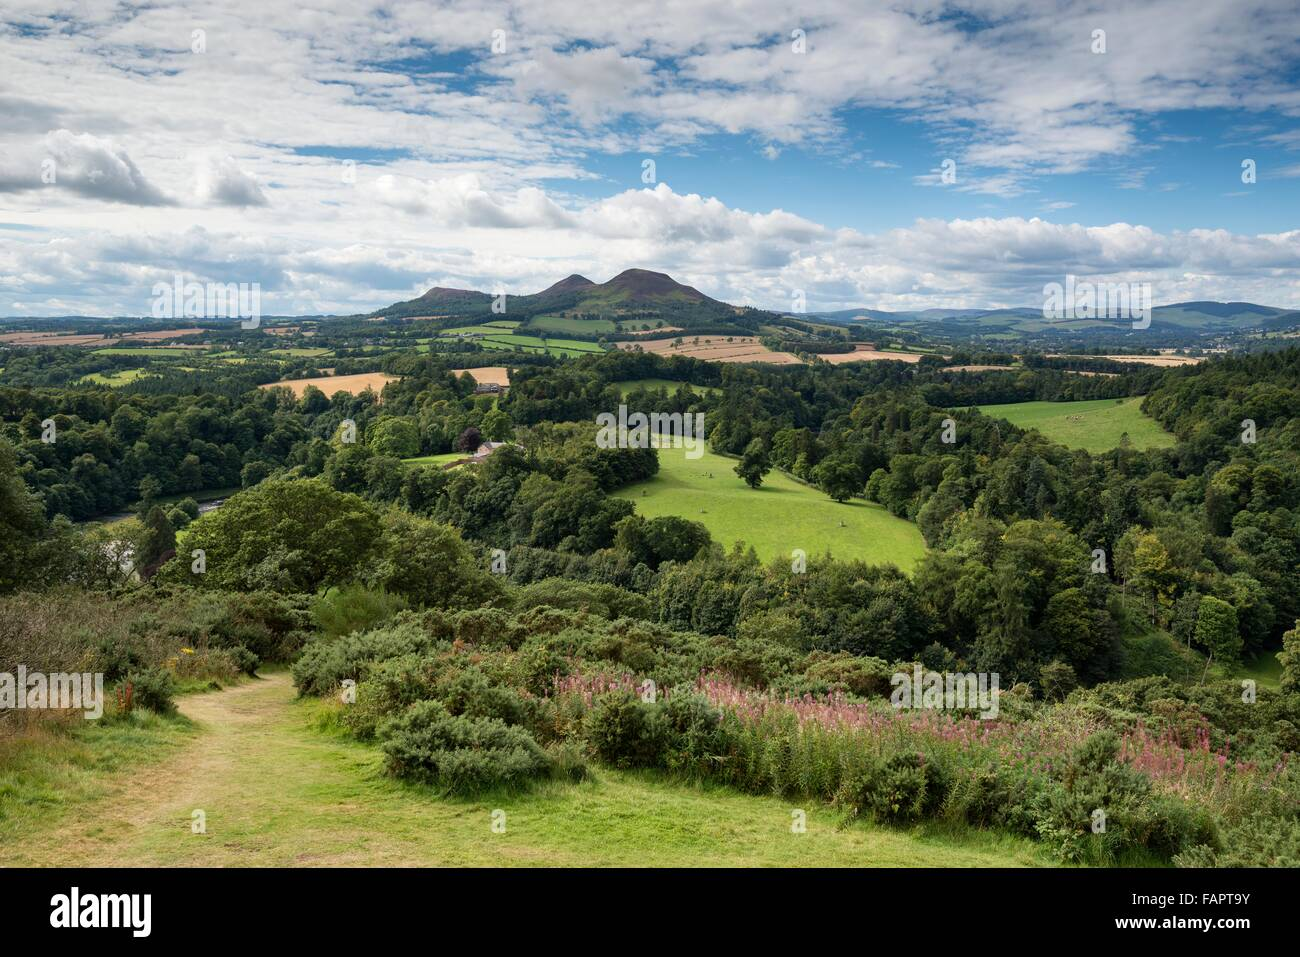 Lookout, Scott's View, St Boswells, Borders District, Scotland, United Kingdom - Stock Image